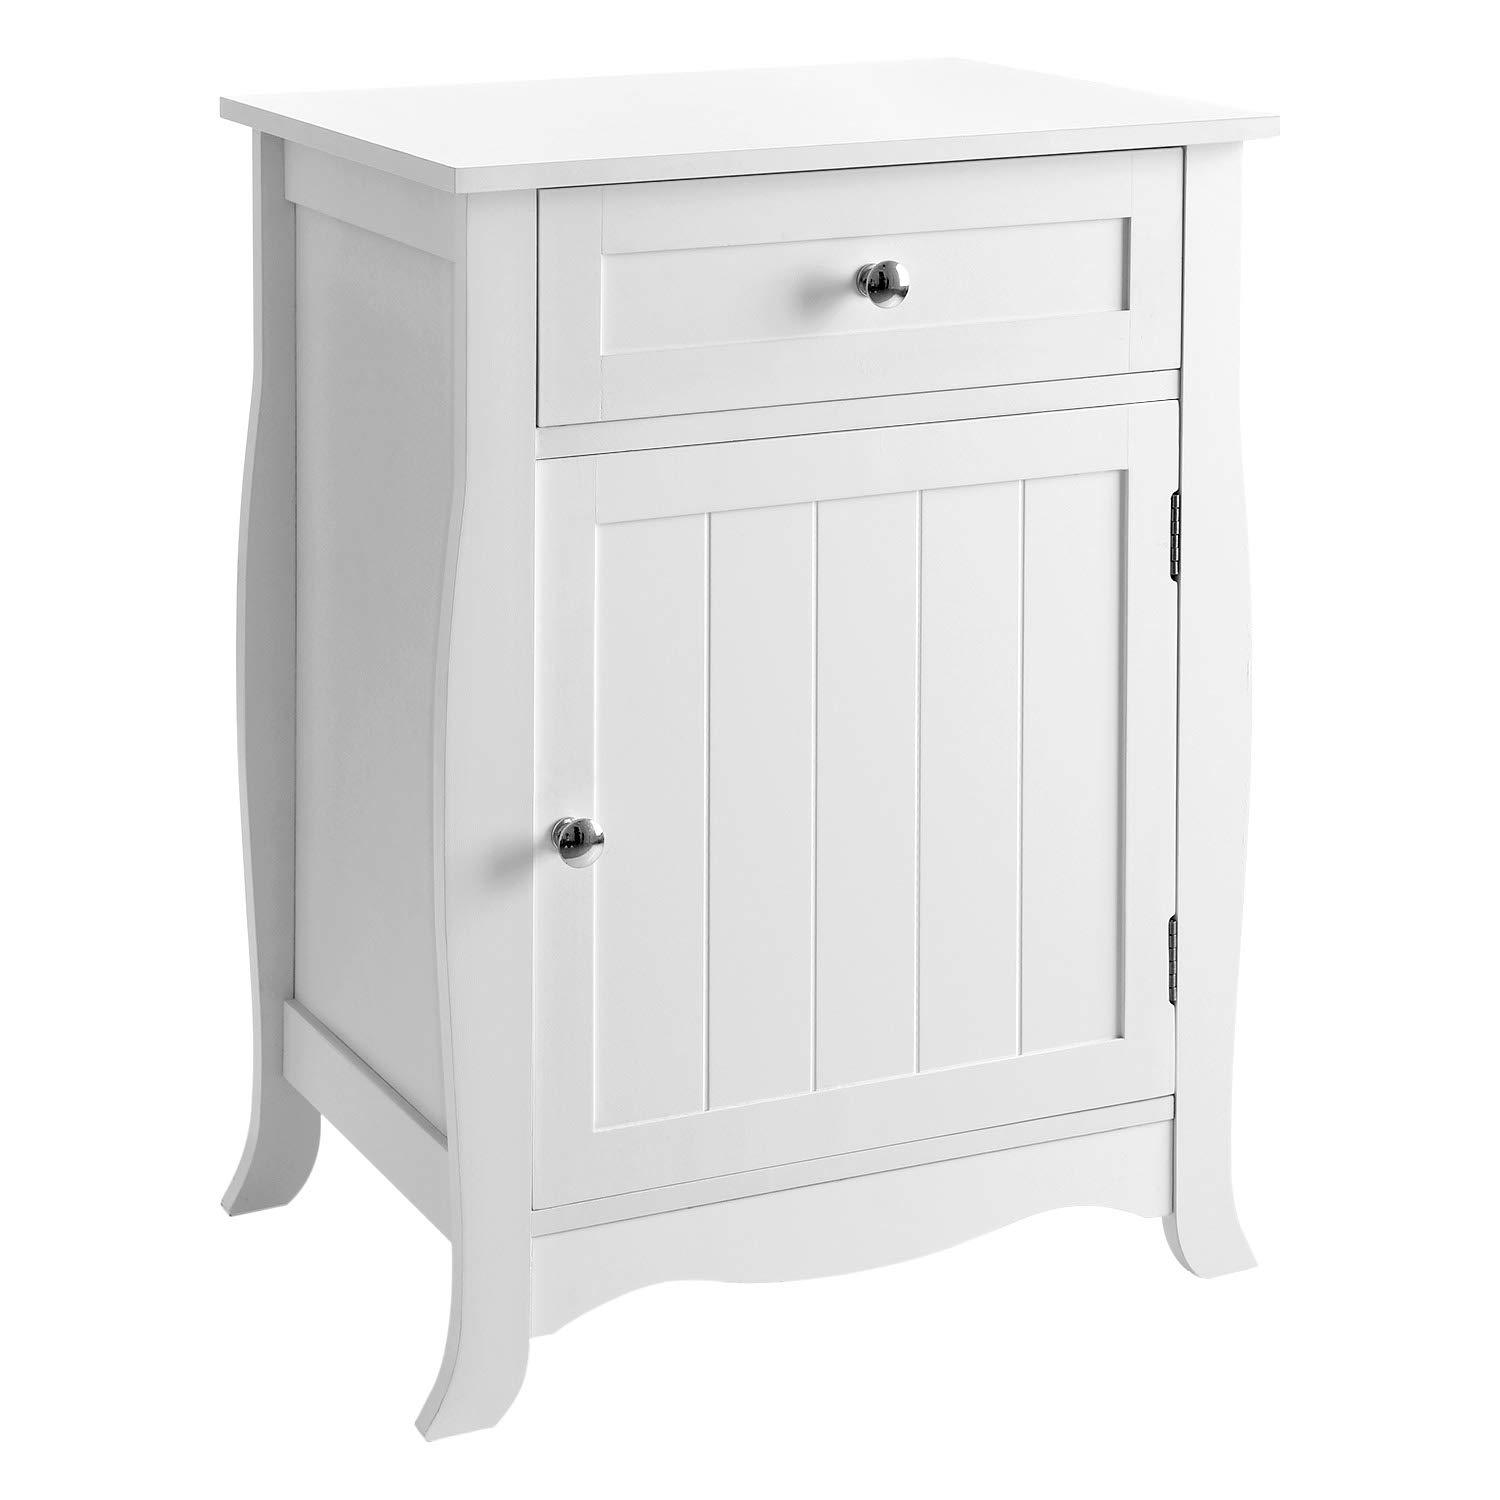 SONGMICS White Nightstand BedsideTable Wooden Ameriwood Furniture End Table Chair Side Table with Drawer and Cabinet Organizer for Storage ULET02WT